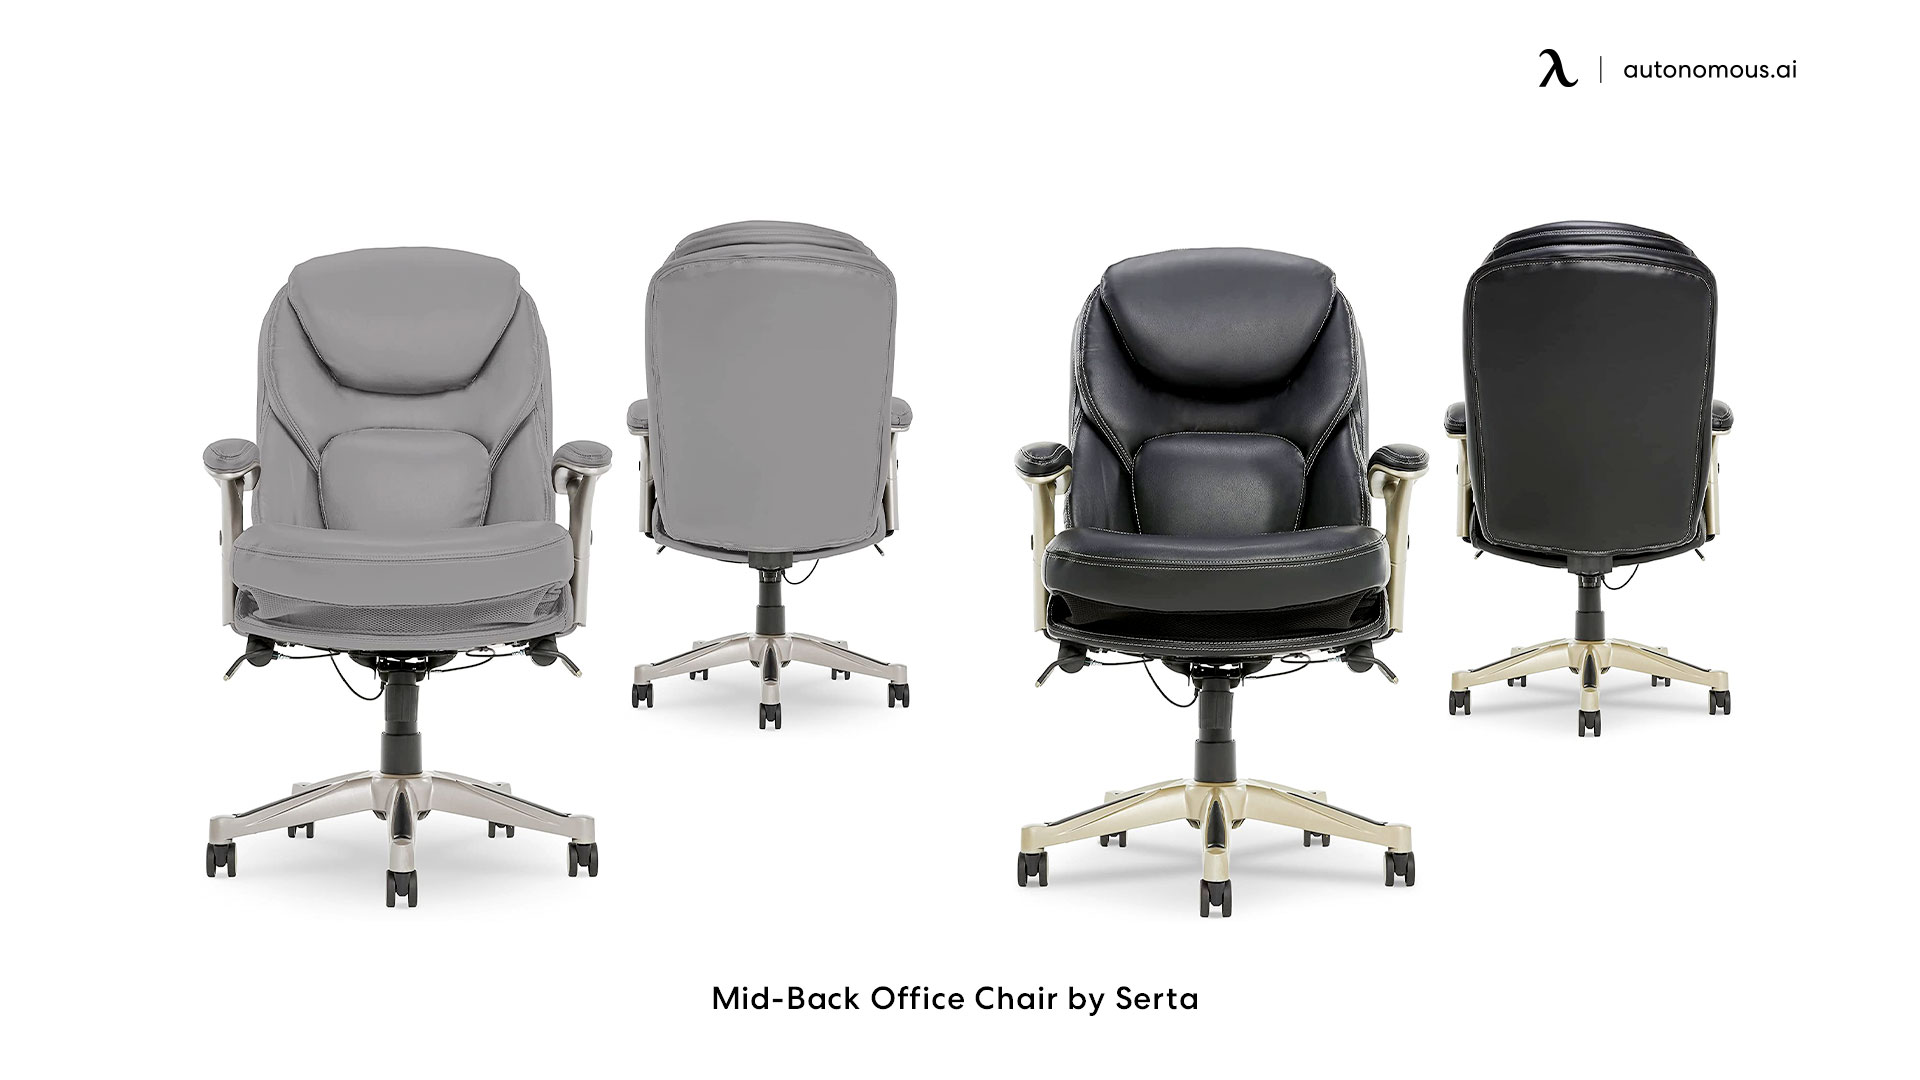 Mid-Back Office Chair by Serta